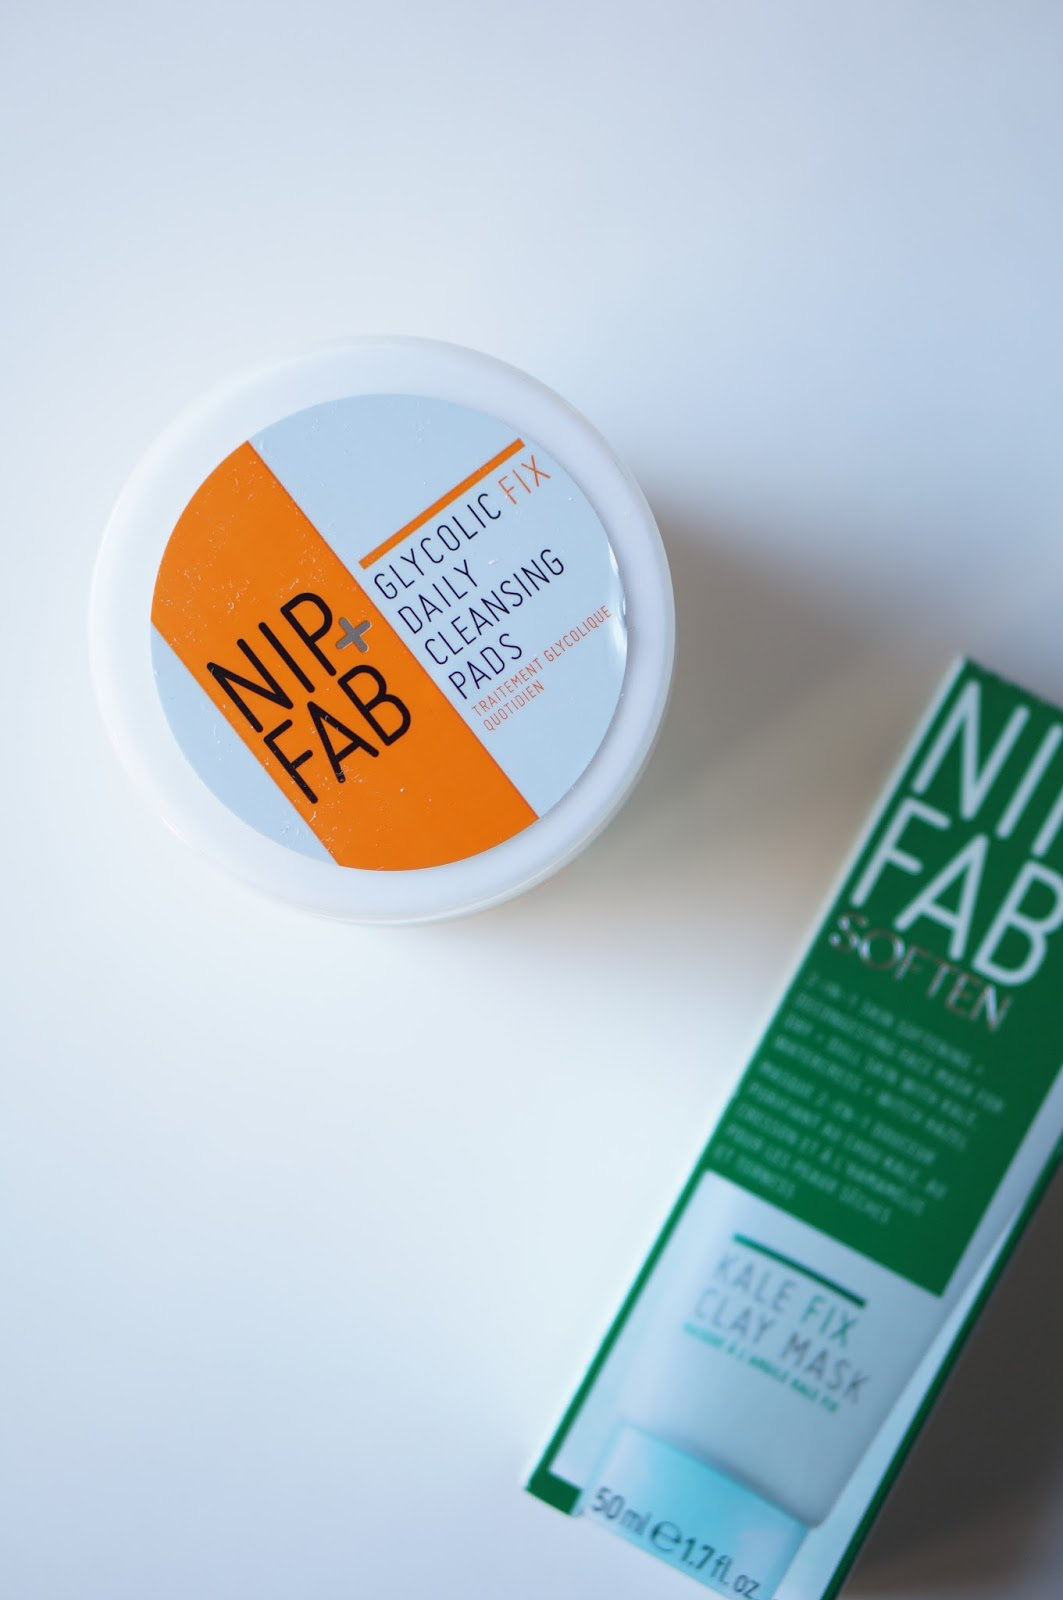 Rebecca Lately NIP + FAB Glycolic Fix Pads Review NIP + FAB Kale Fix Clay Mask Review